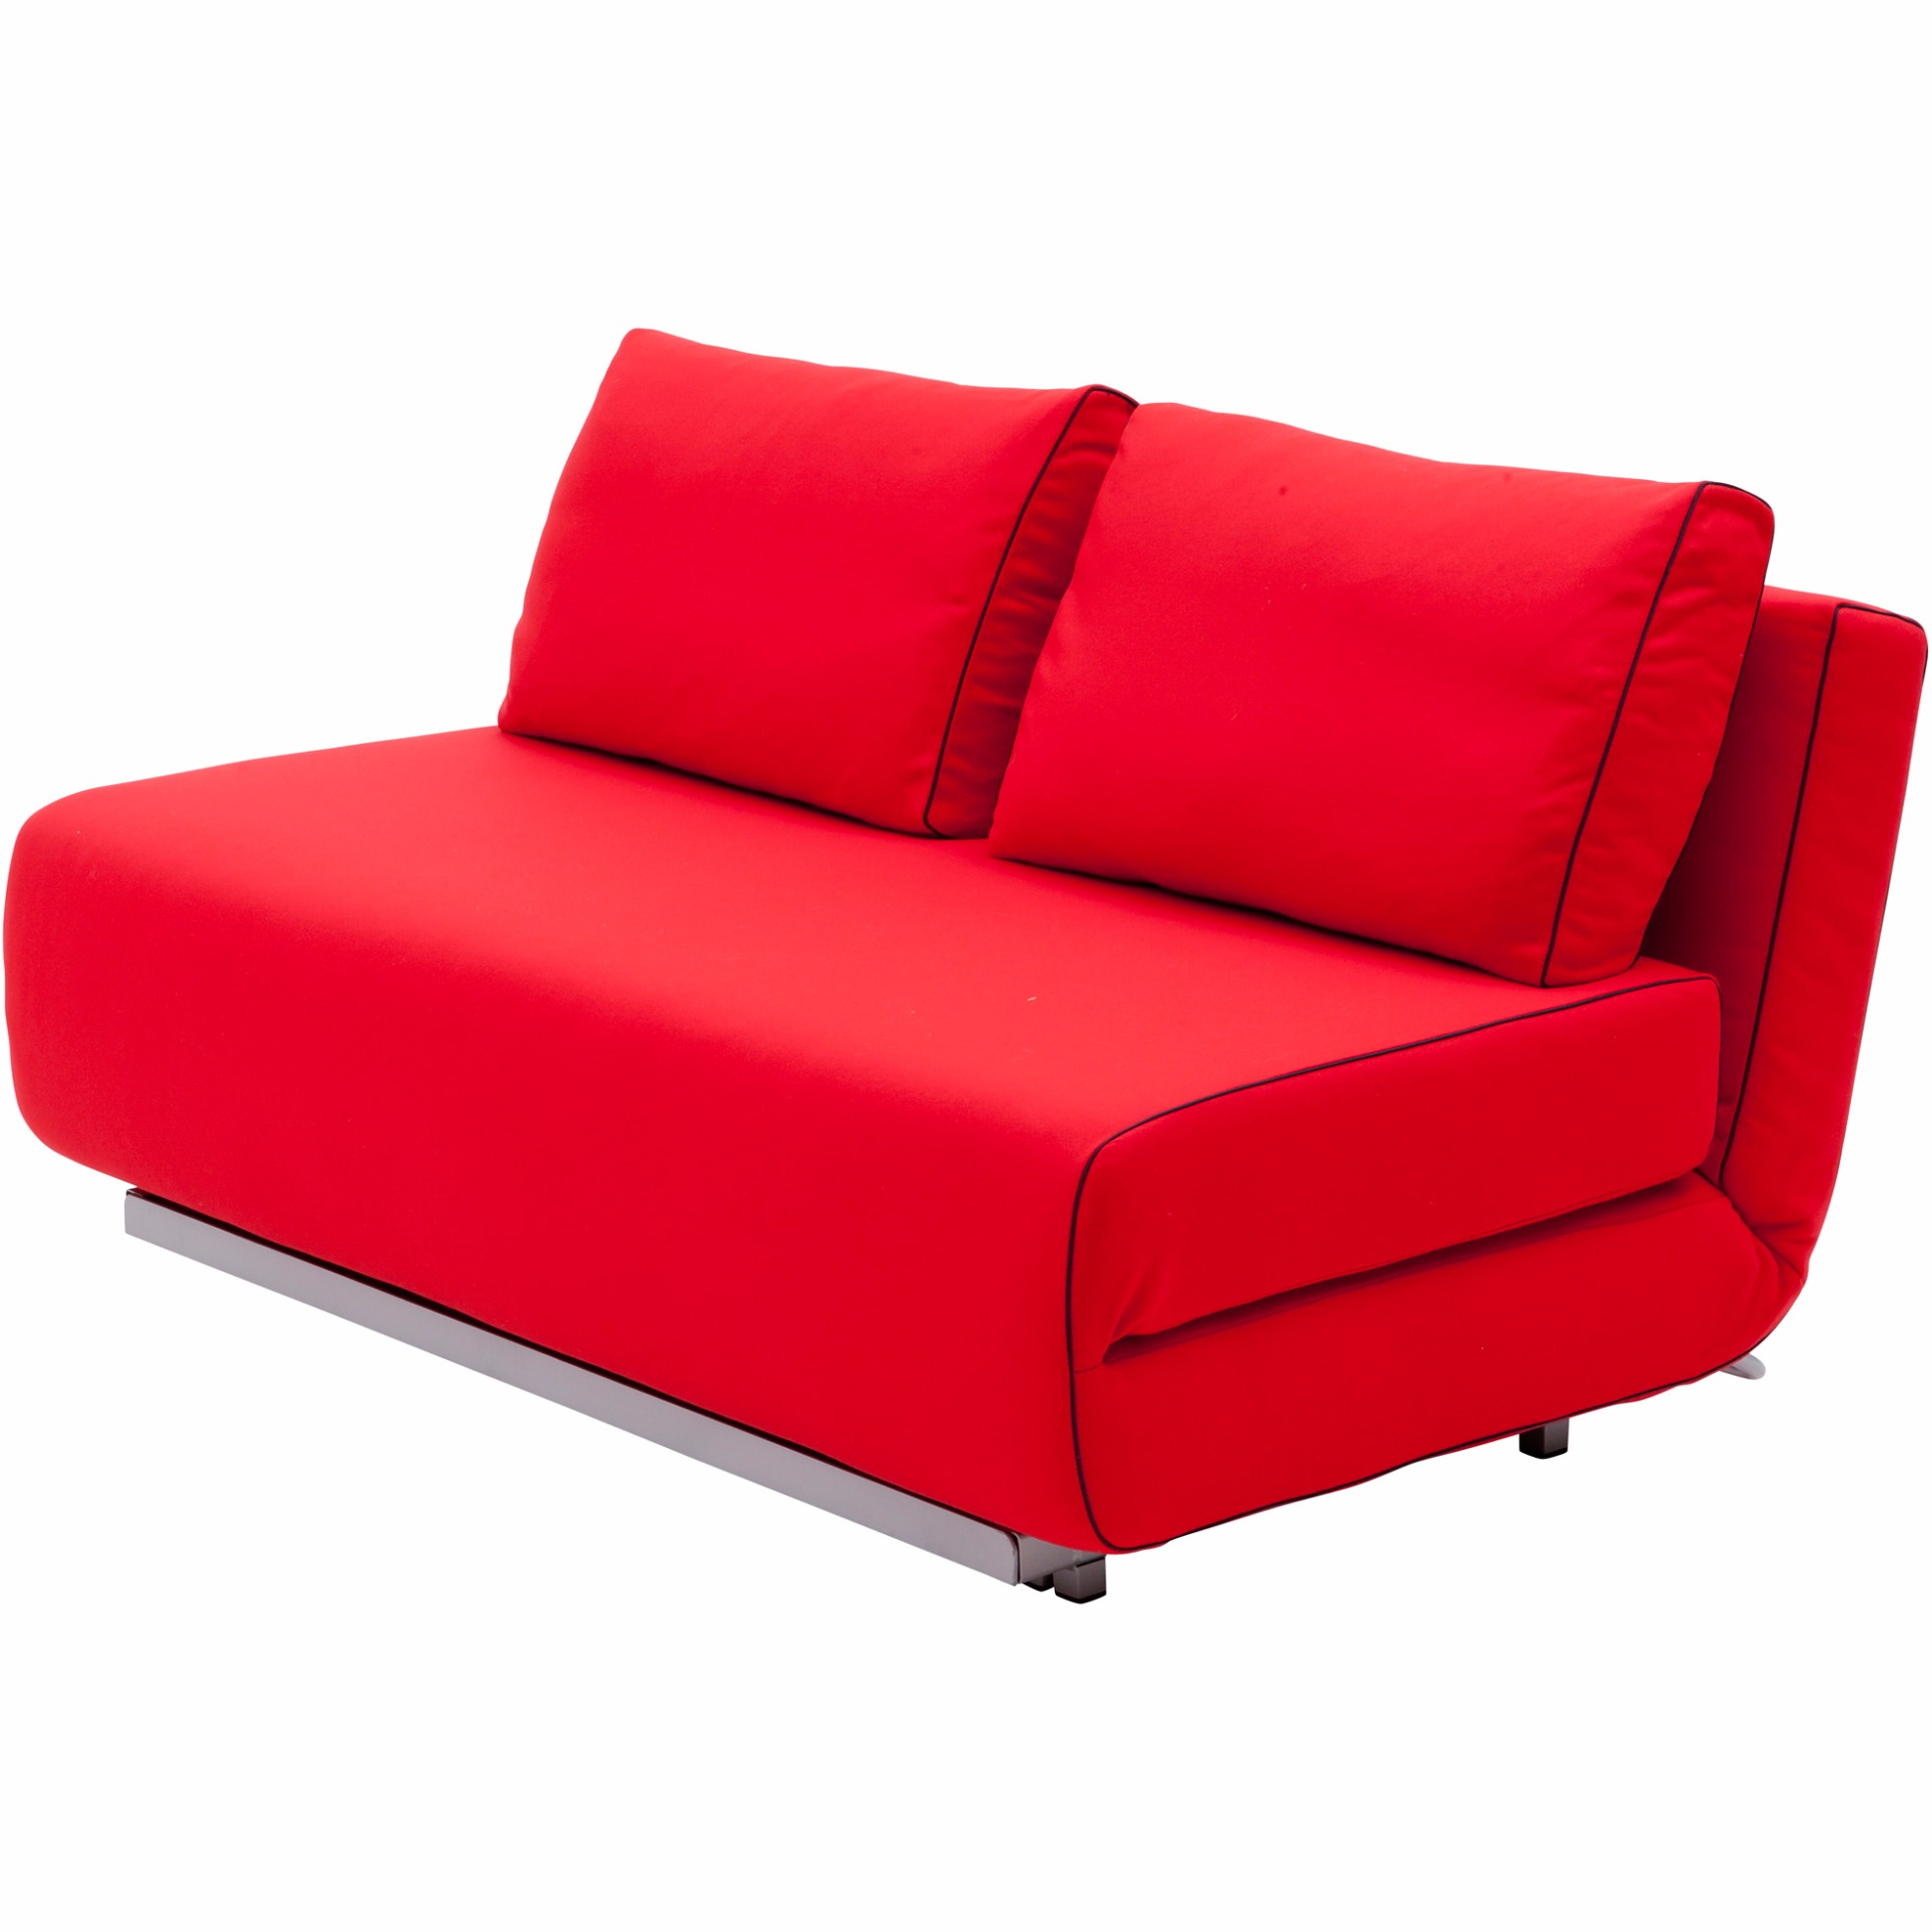 B Famous Schlafsofas Schlafsofa Fr 1 Person Top Best B Famous Schlafsofa Mit